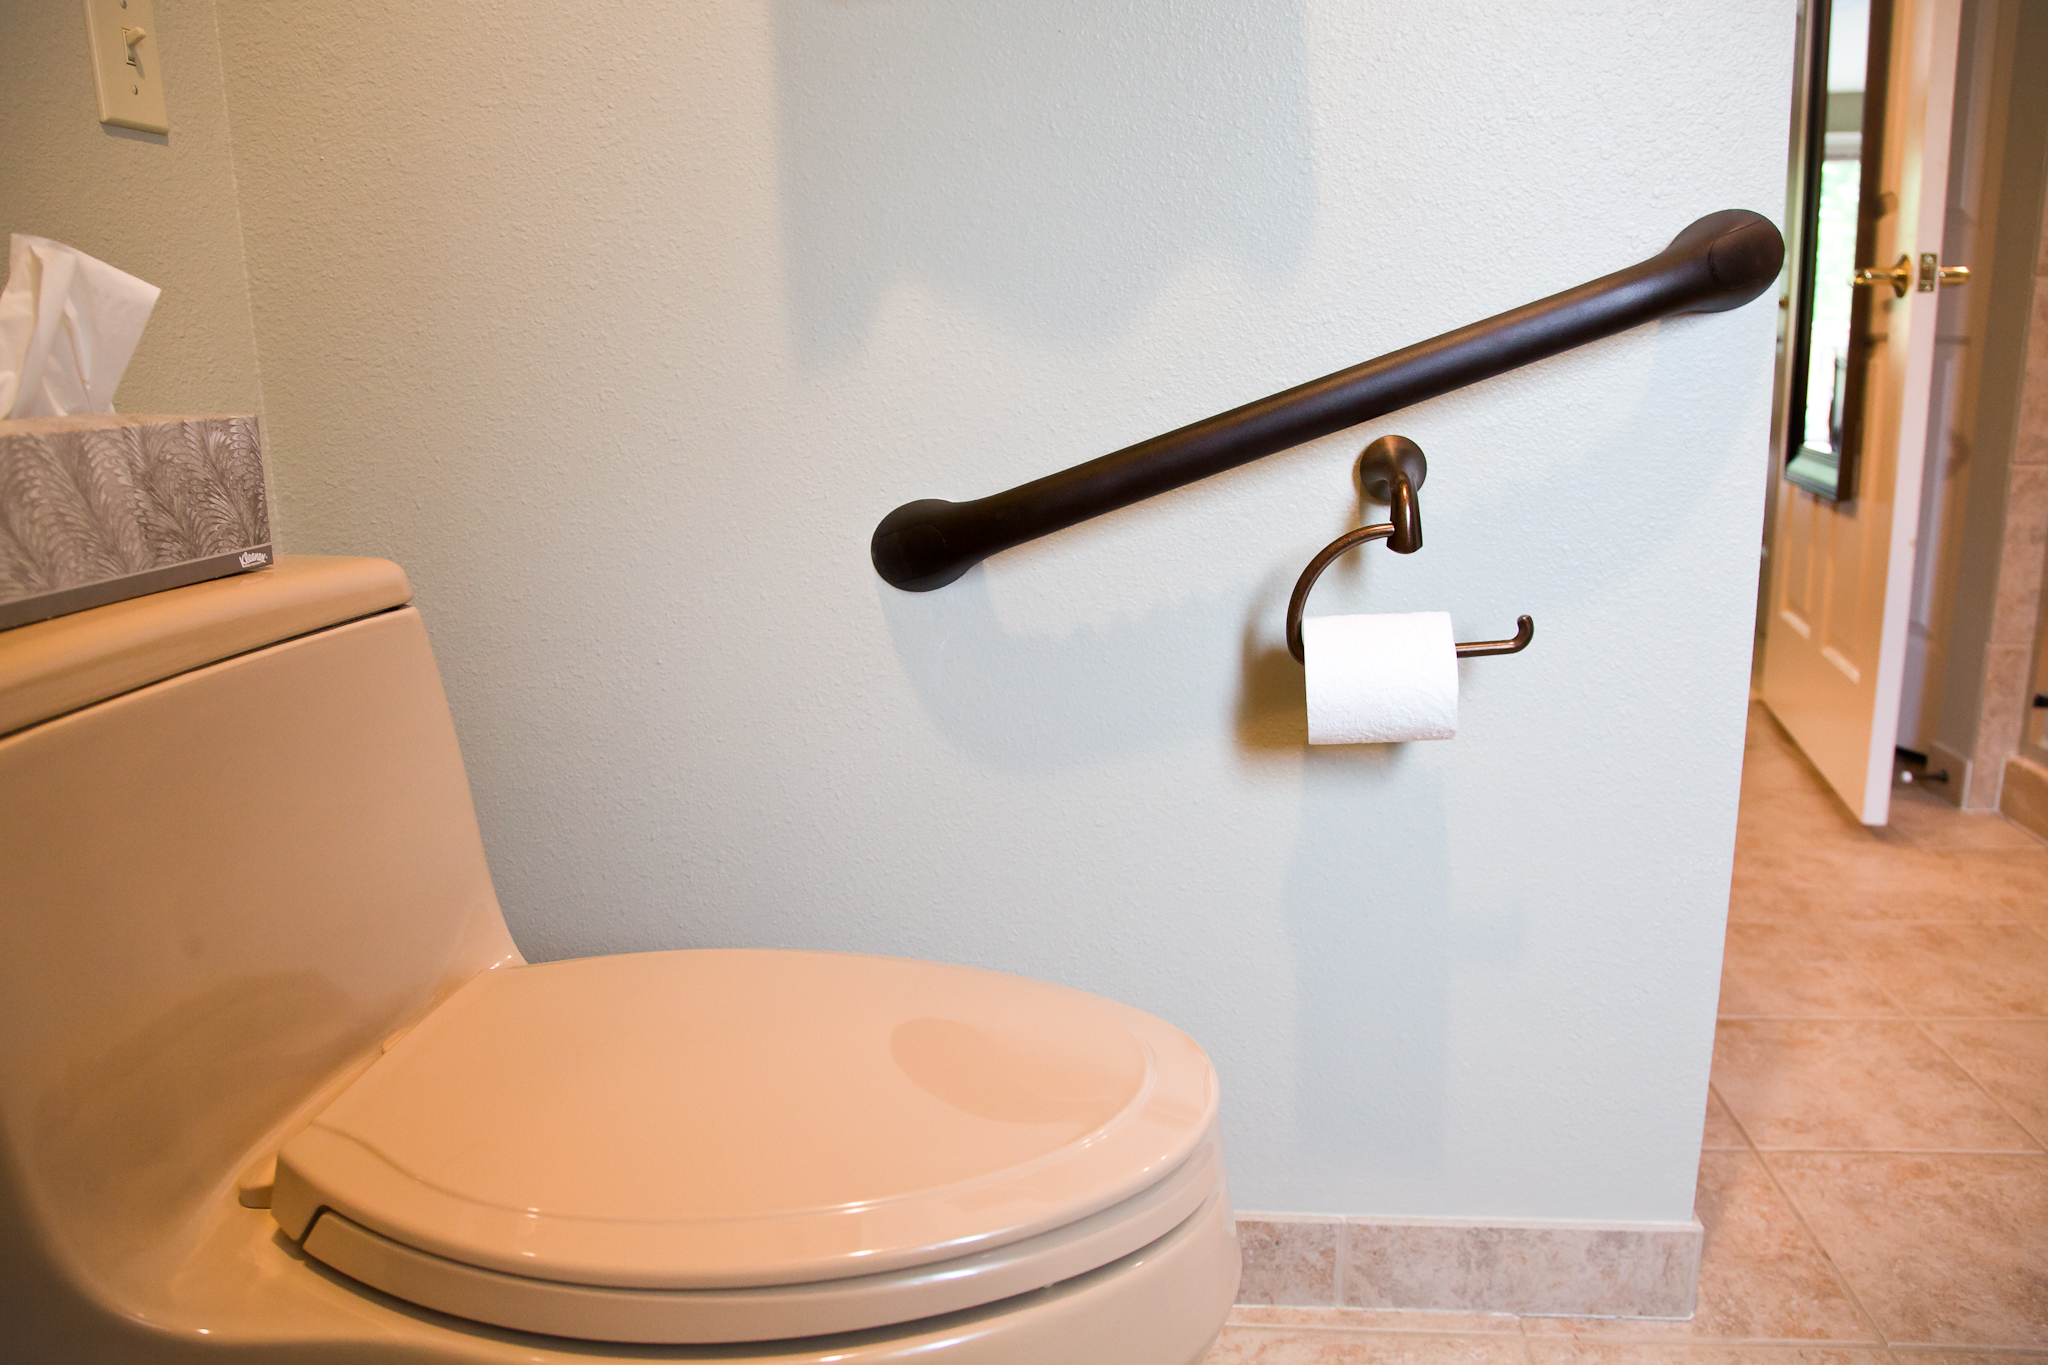 Installing grab bar in bathroom -  Bathroom Grab Bars Installed By Smart Accessible Living